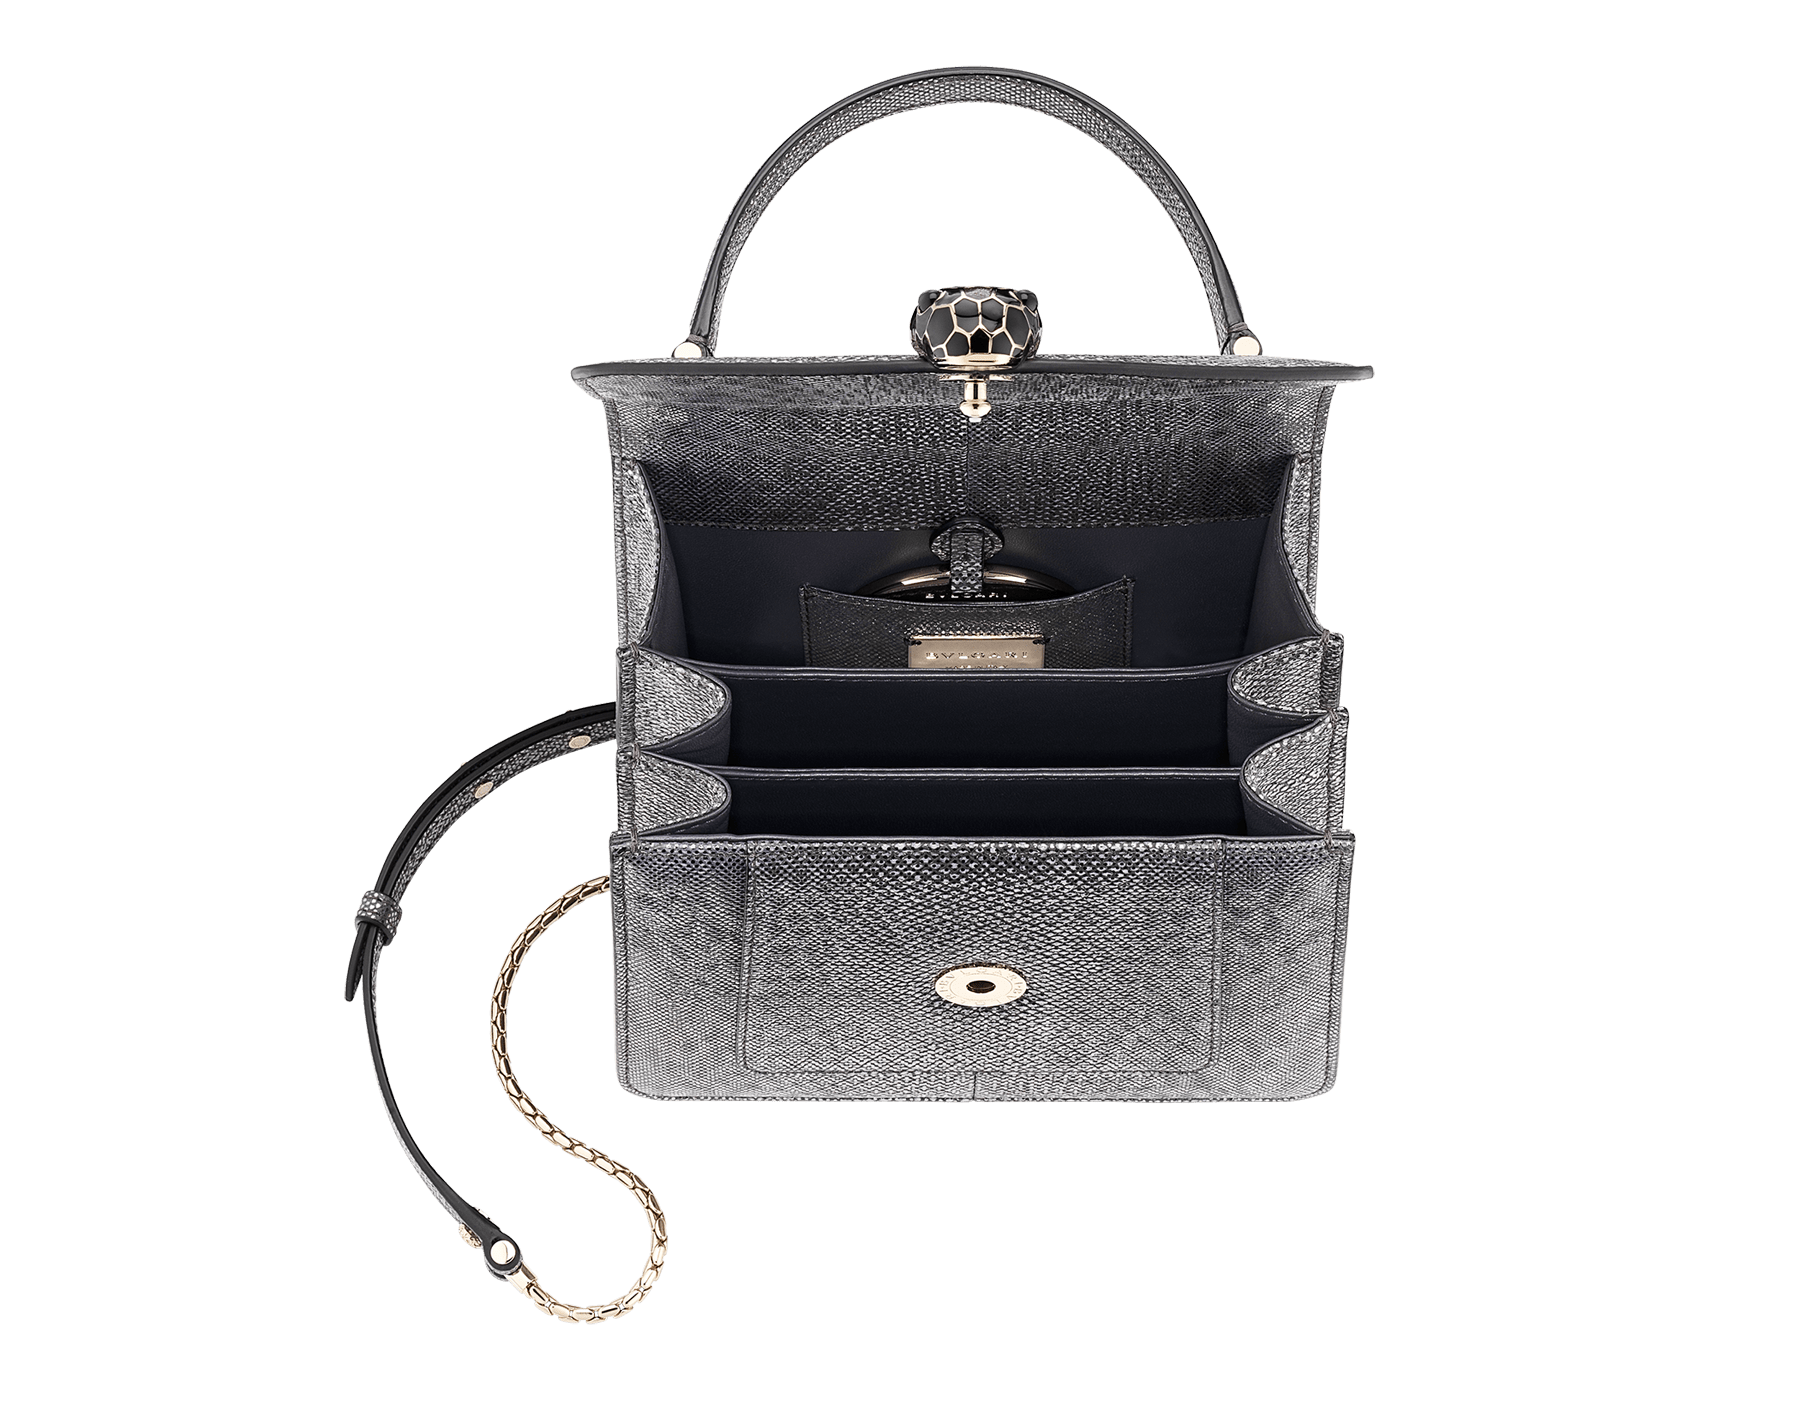 Serpenti Forever crossbody bag in forest emerald metallic karung skin. Snakehead closure in light gold plated brass decorated with shiny black and glitter forest emerald, and black onyx eyes. Special Edition 752-MK image 4